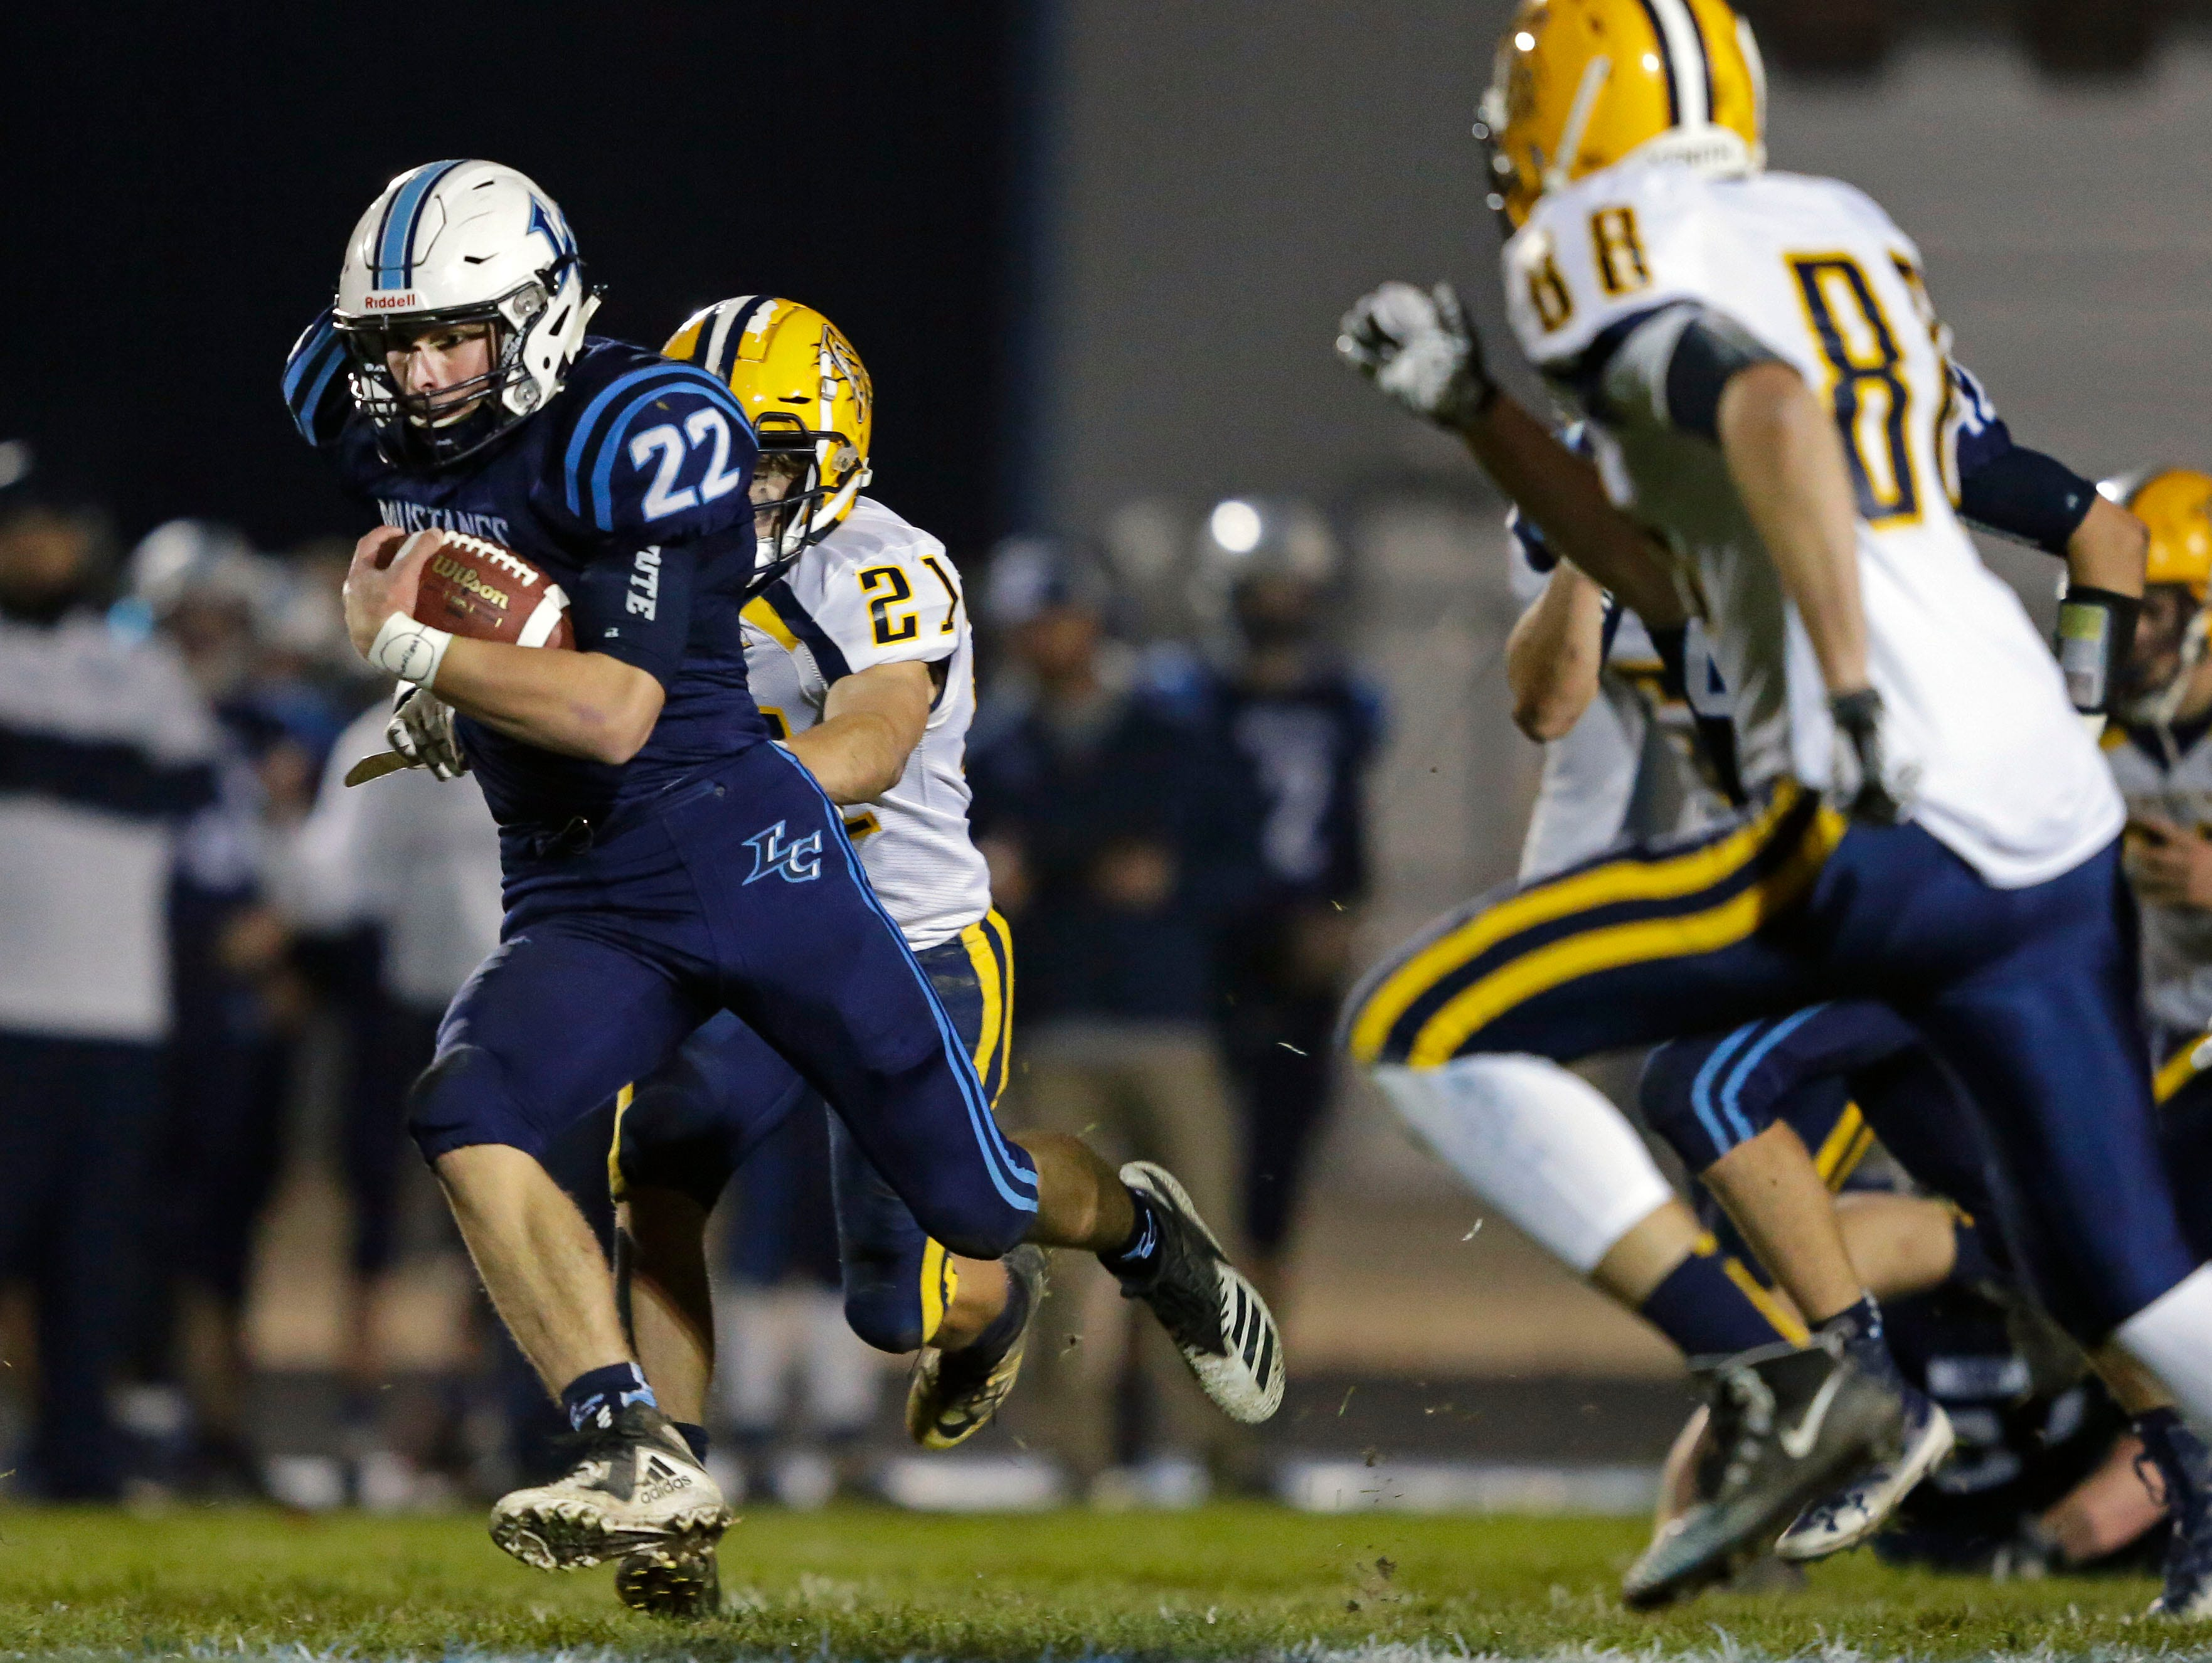 Bryce Schumacher of Little Chute carries the ball against Chilton in a WIAA Division 4 second round football playoff game Friday, October 26, 2018, at Little Chute High School in Little Chute, Wis.Ron Page/USA TODAY NETWORK-Wisconsin